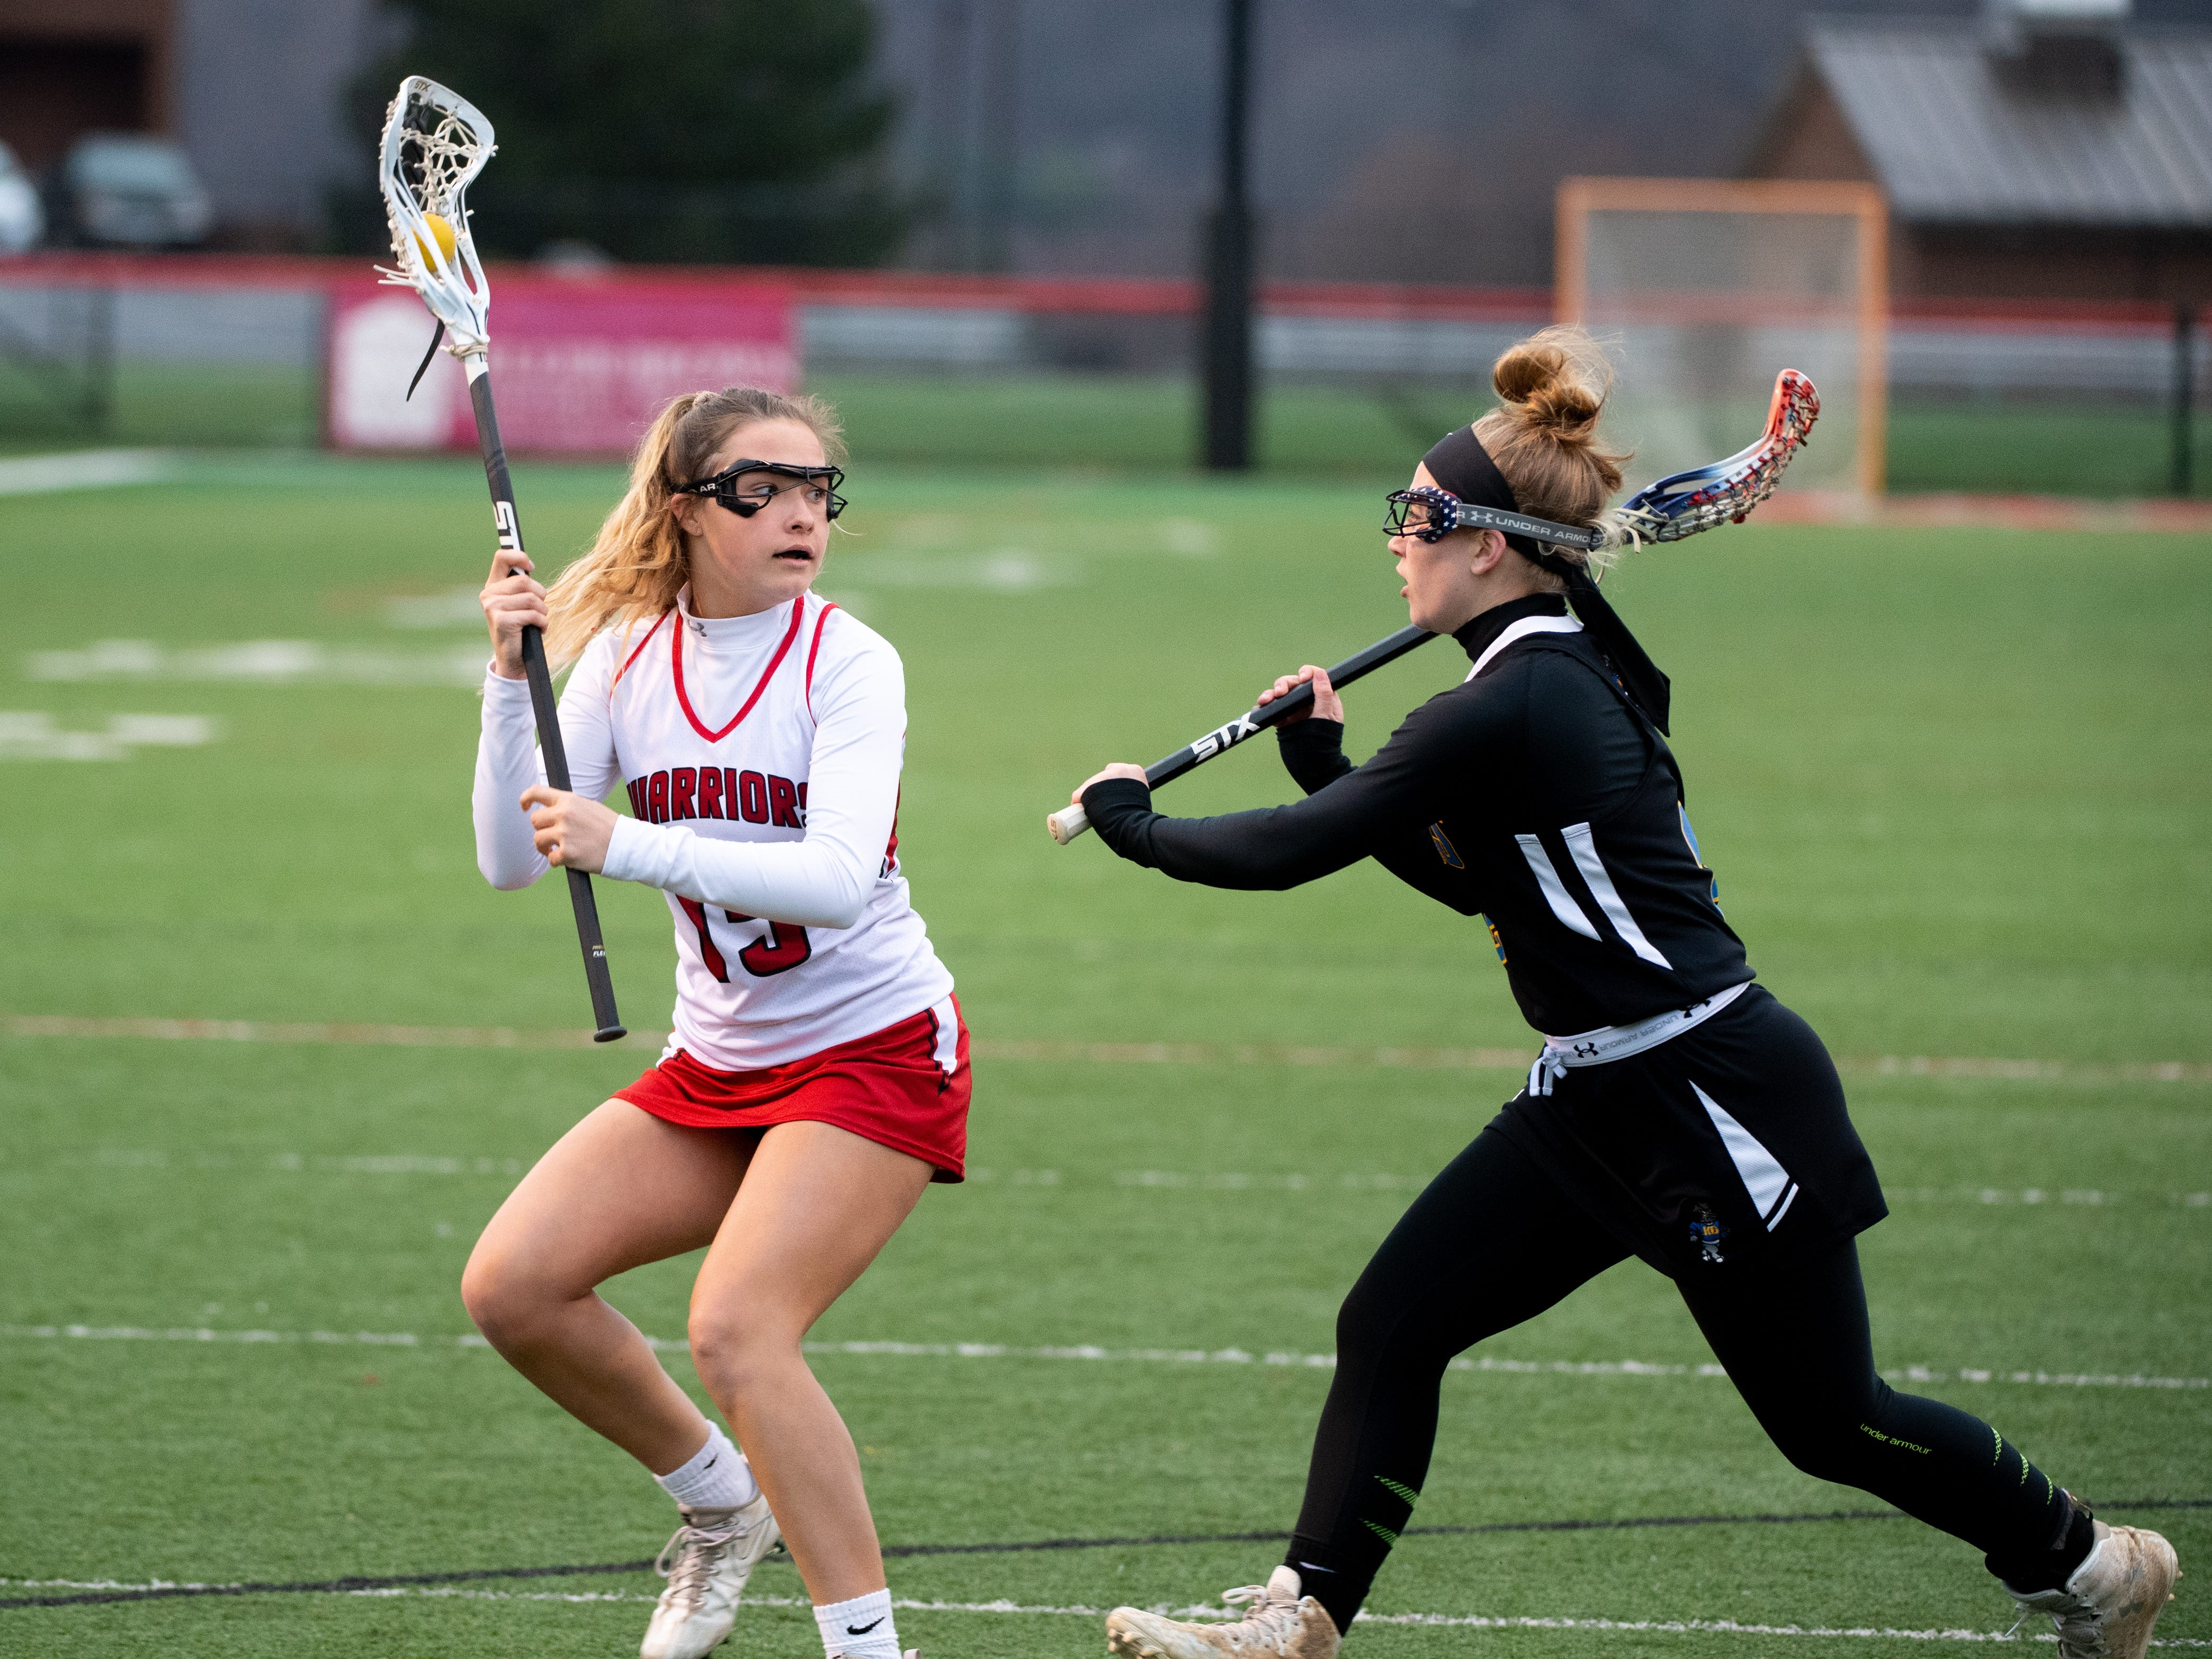 Kalen Hancock (15) protects the ball during the girls' lacrosse game between Susquehannock and Kennard-Dale, April 2, 2019 at Susquehannock High School. The Rams defeated the Warriors 17 to 2.